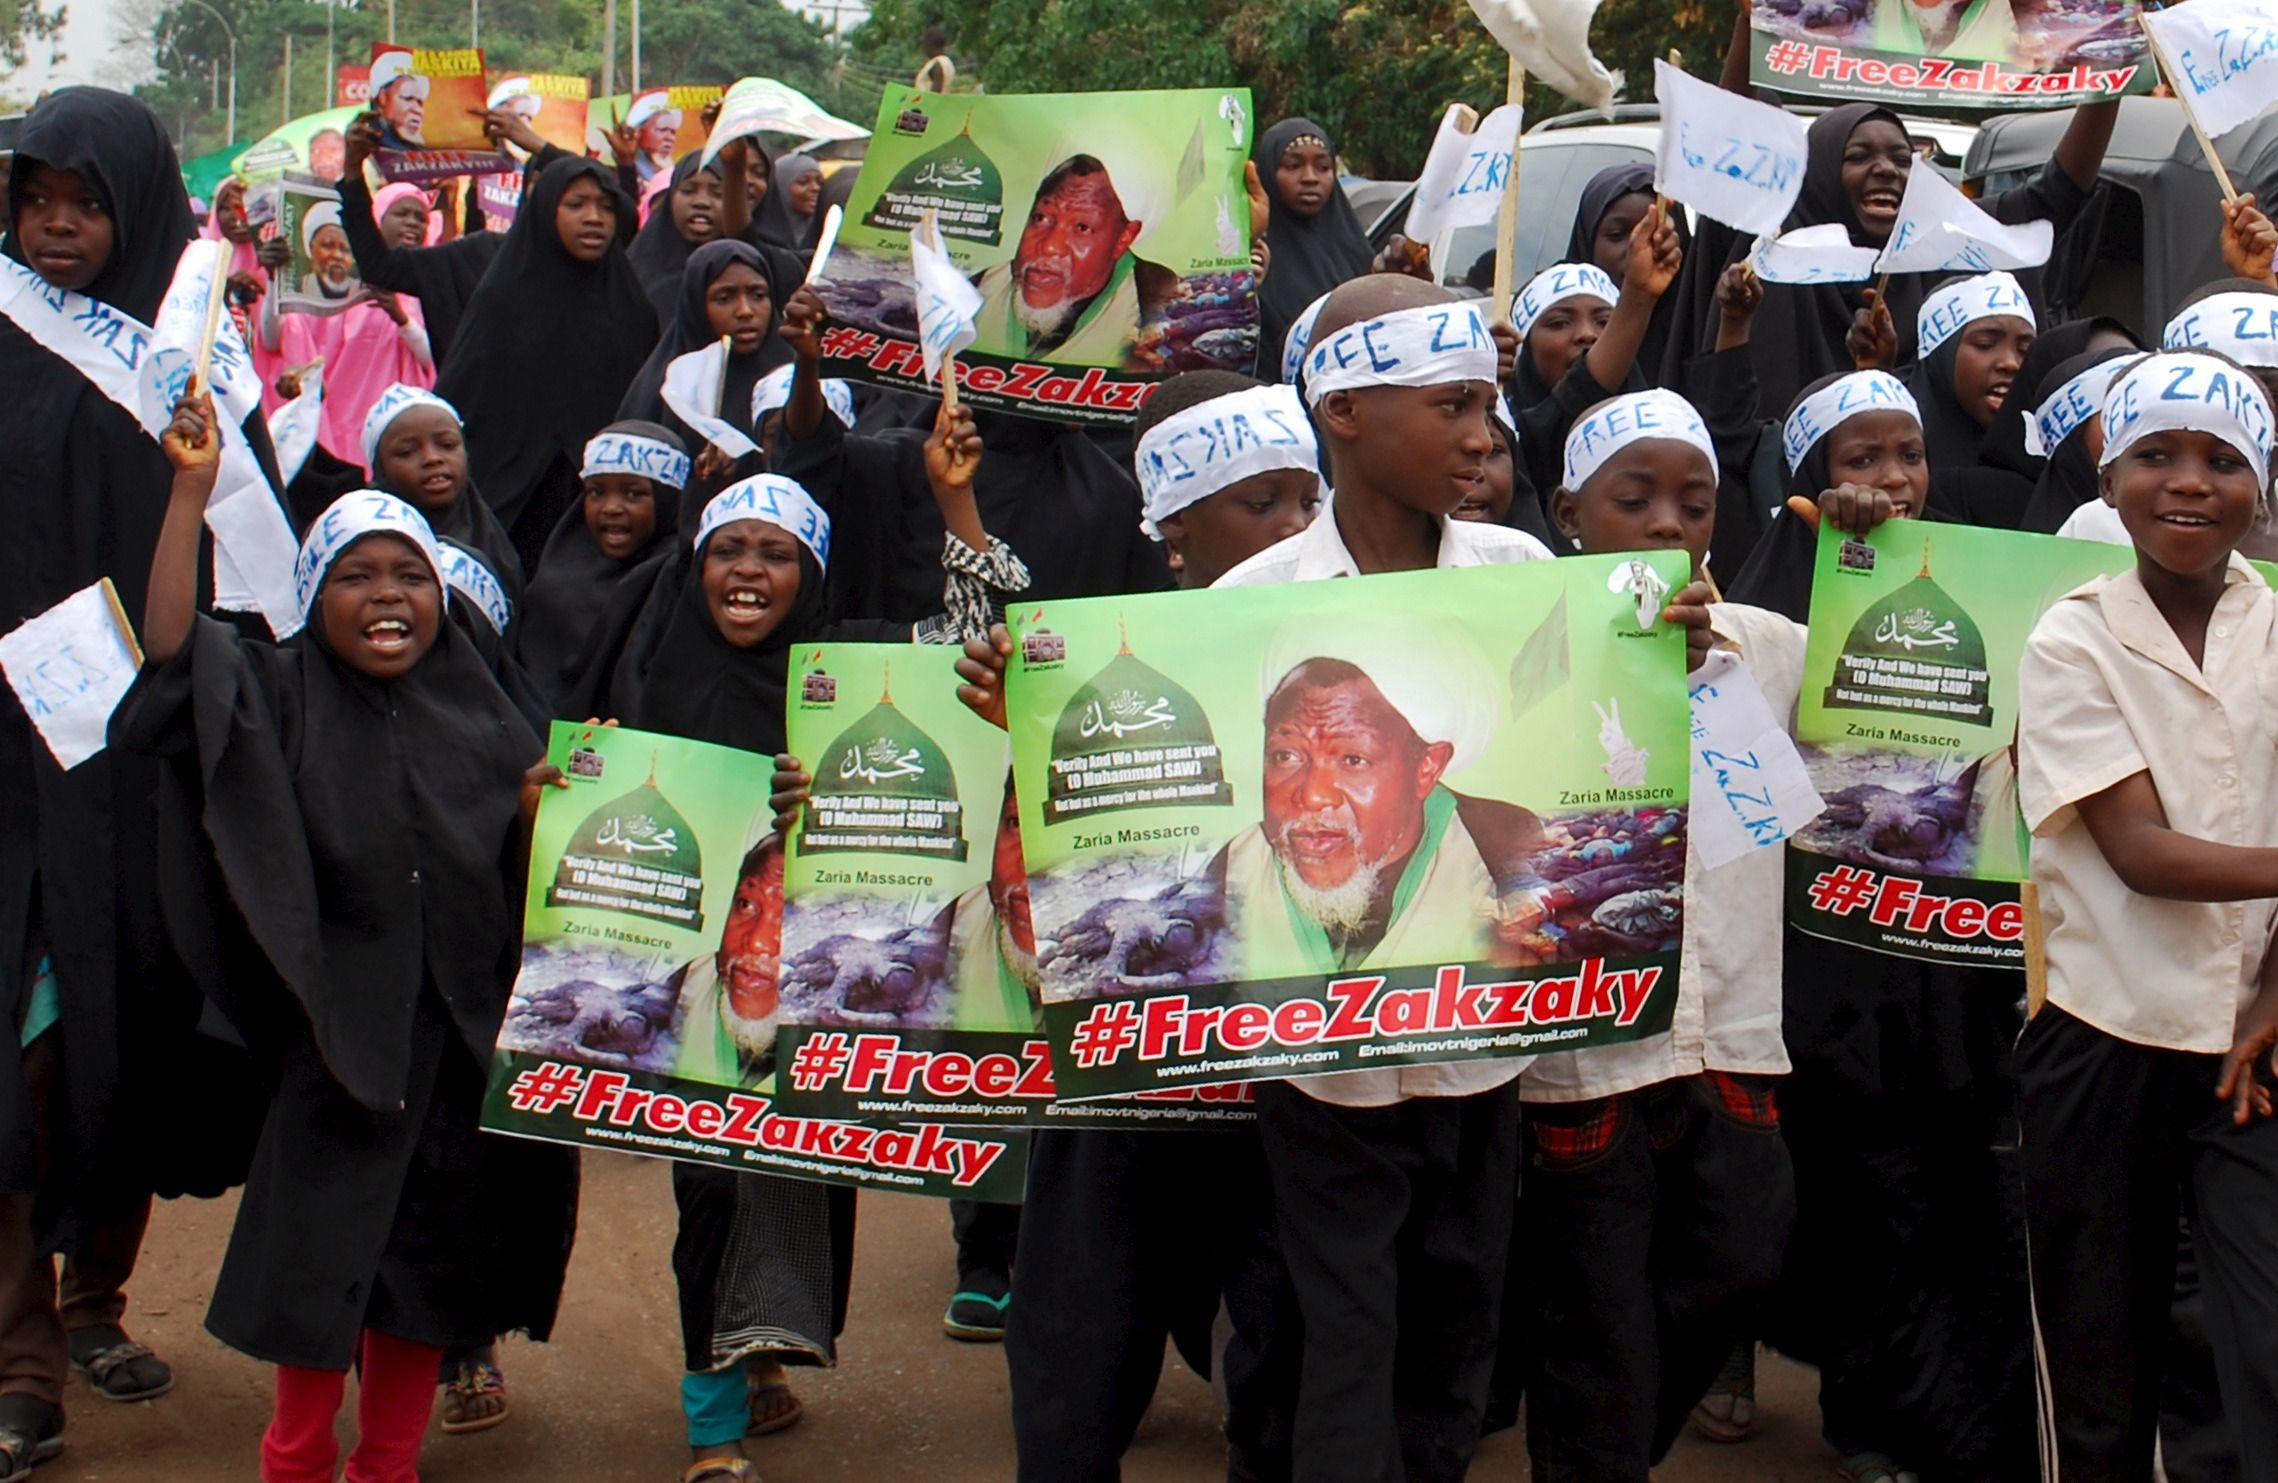 Shiite children demonstrate for the release of Sheikh Zakzaky in Kaduna.